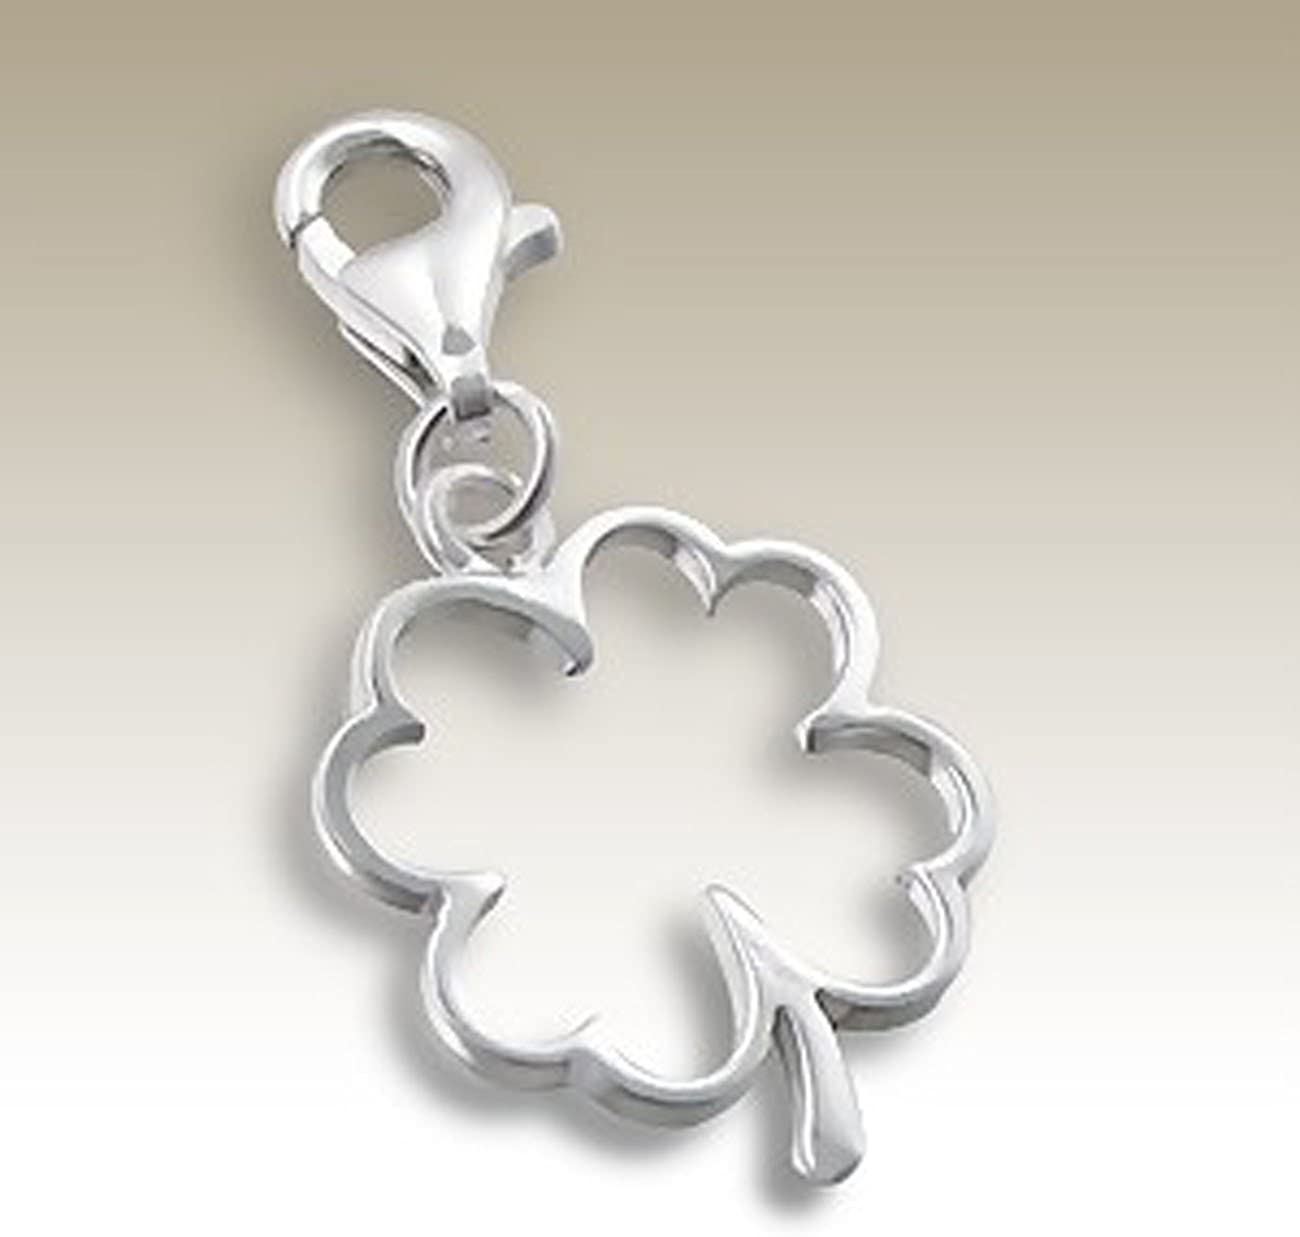 E7043 for Charms Bracelet Necklace Four Leaf Clover Charm with Lobster Clasp Sterling Silver 925